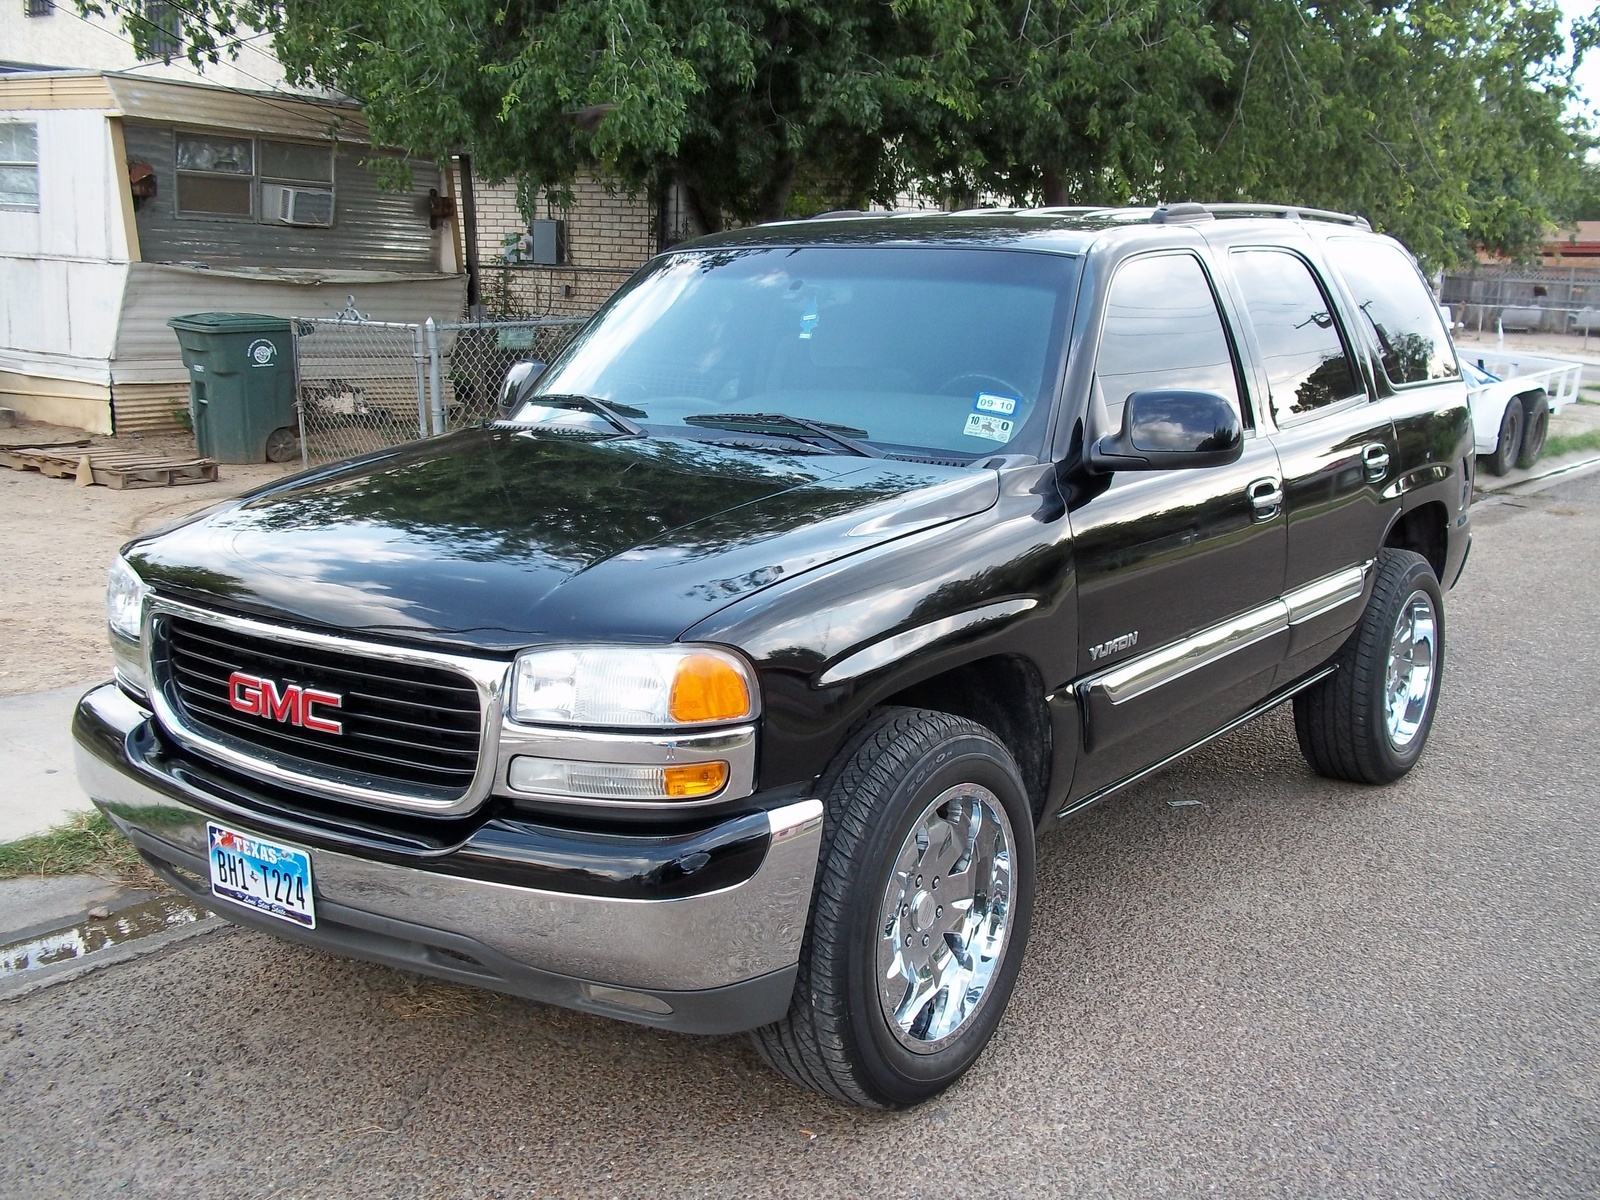 What can i do to my 2004 yukon to change the enginge to the 6 0 denali one